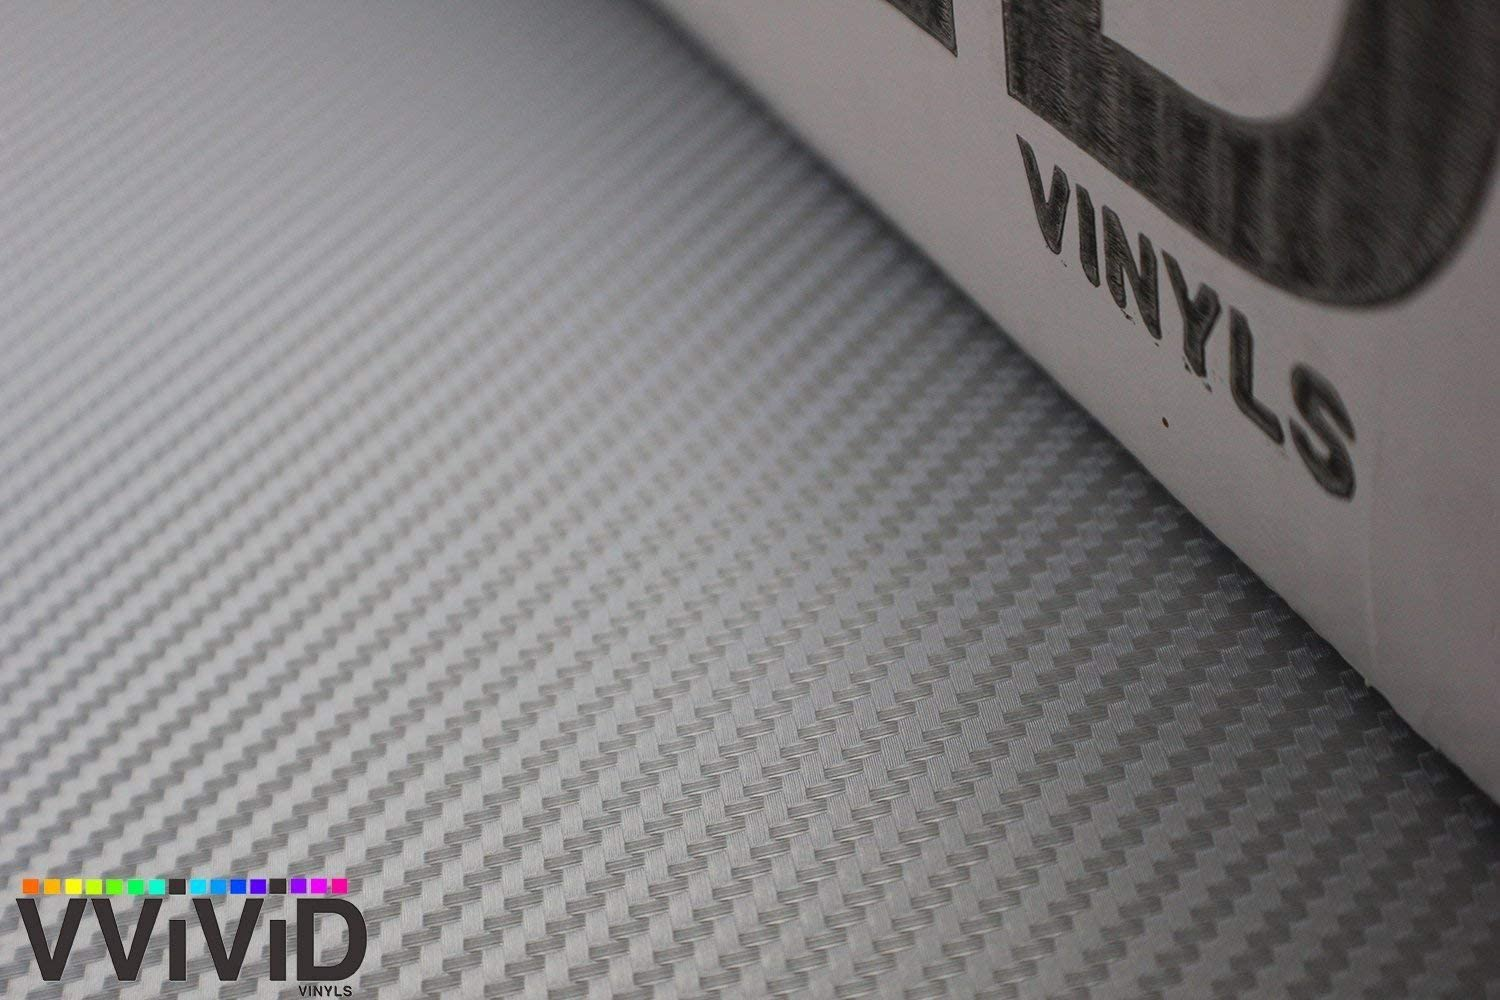 Silver 3D Carbon Fiber 5ft x 1.5ft Vinyl Wrap Roll with Air Release Technology